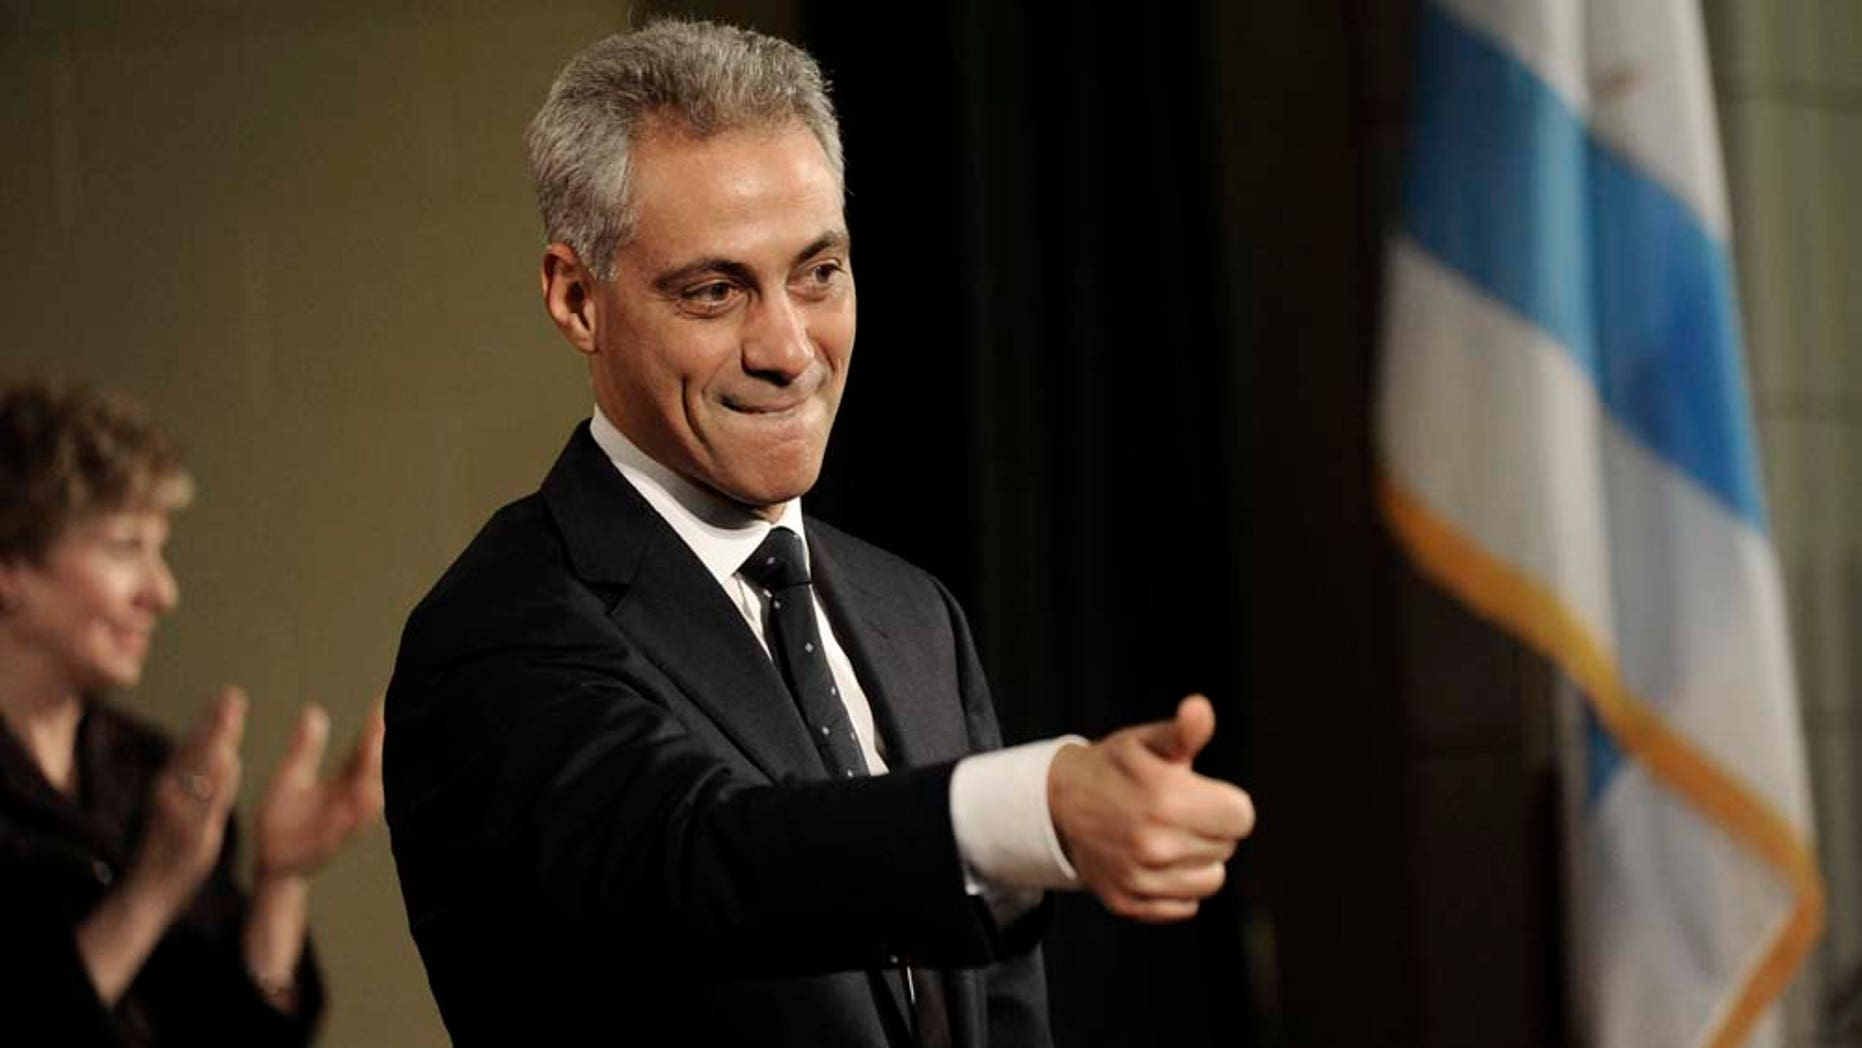 Rahm Emanuel, former White House chief of staff, announced his candidacy for Chicago mayor on Nov. 13.